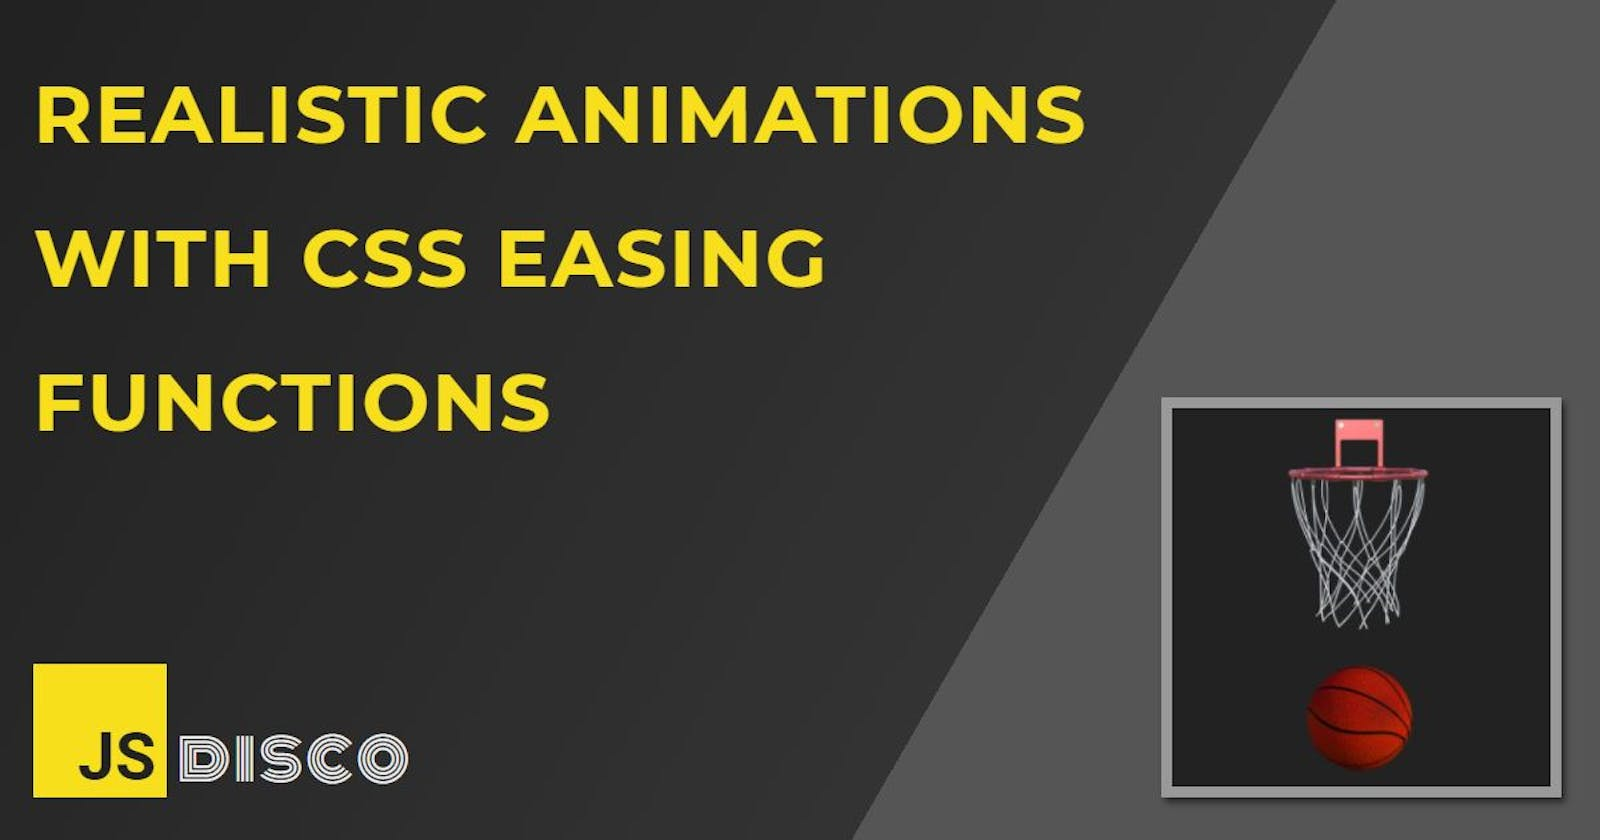 Realistic animations with CSS easing functions: Bouncing balls, pendulums and tossing books